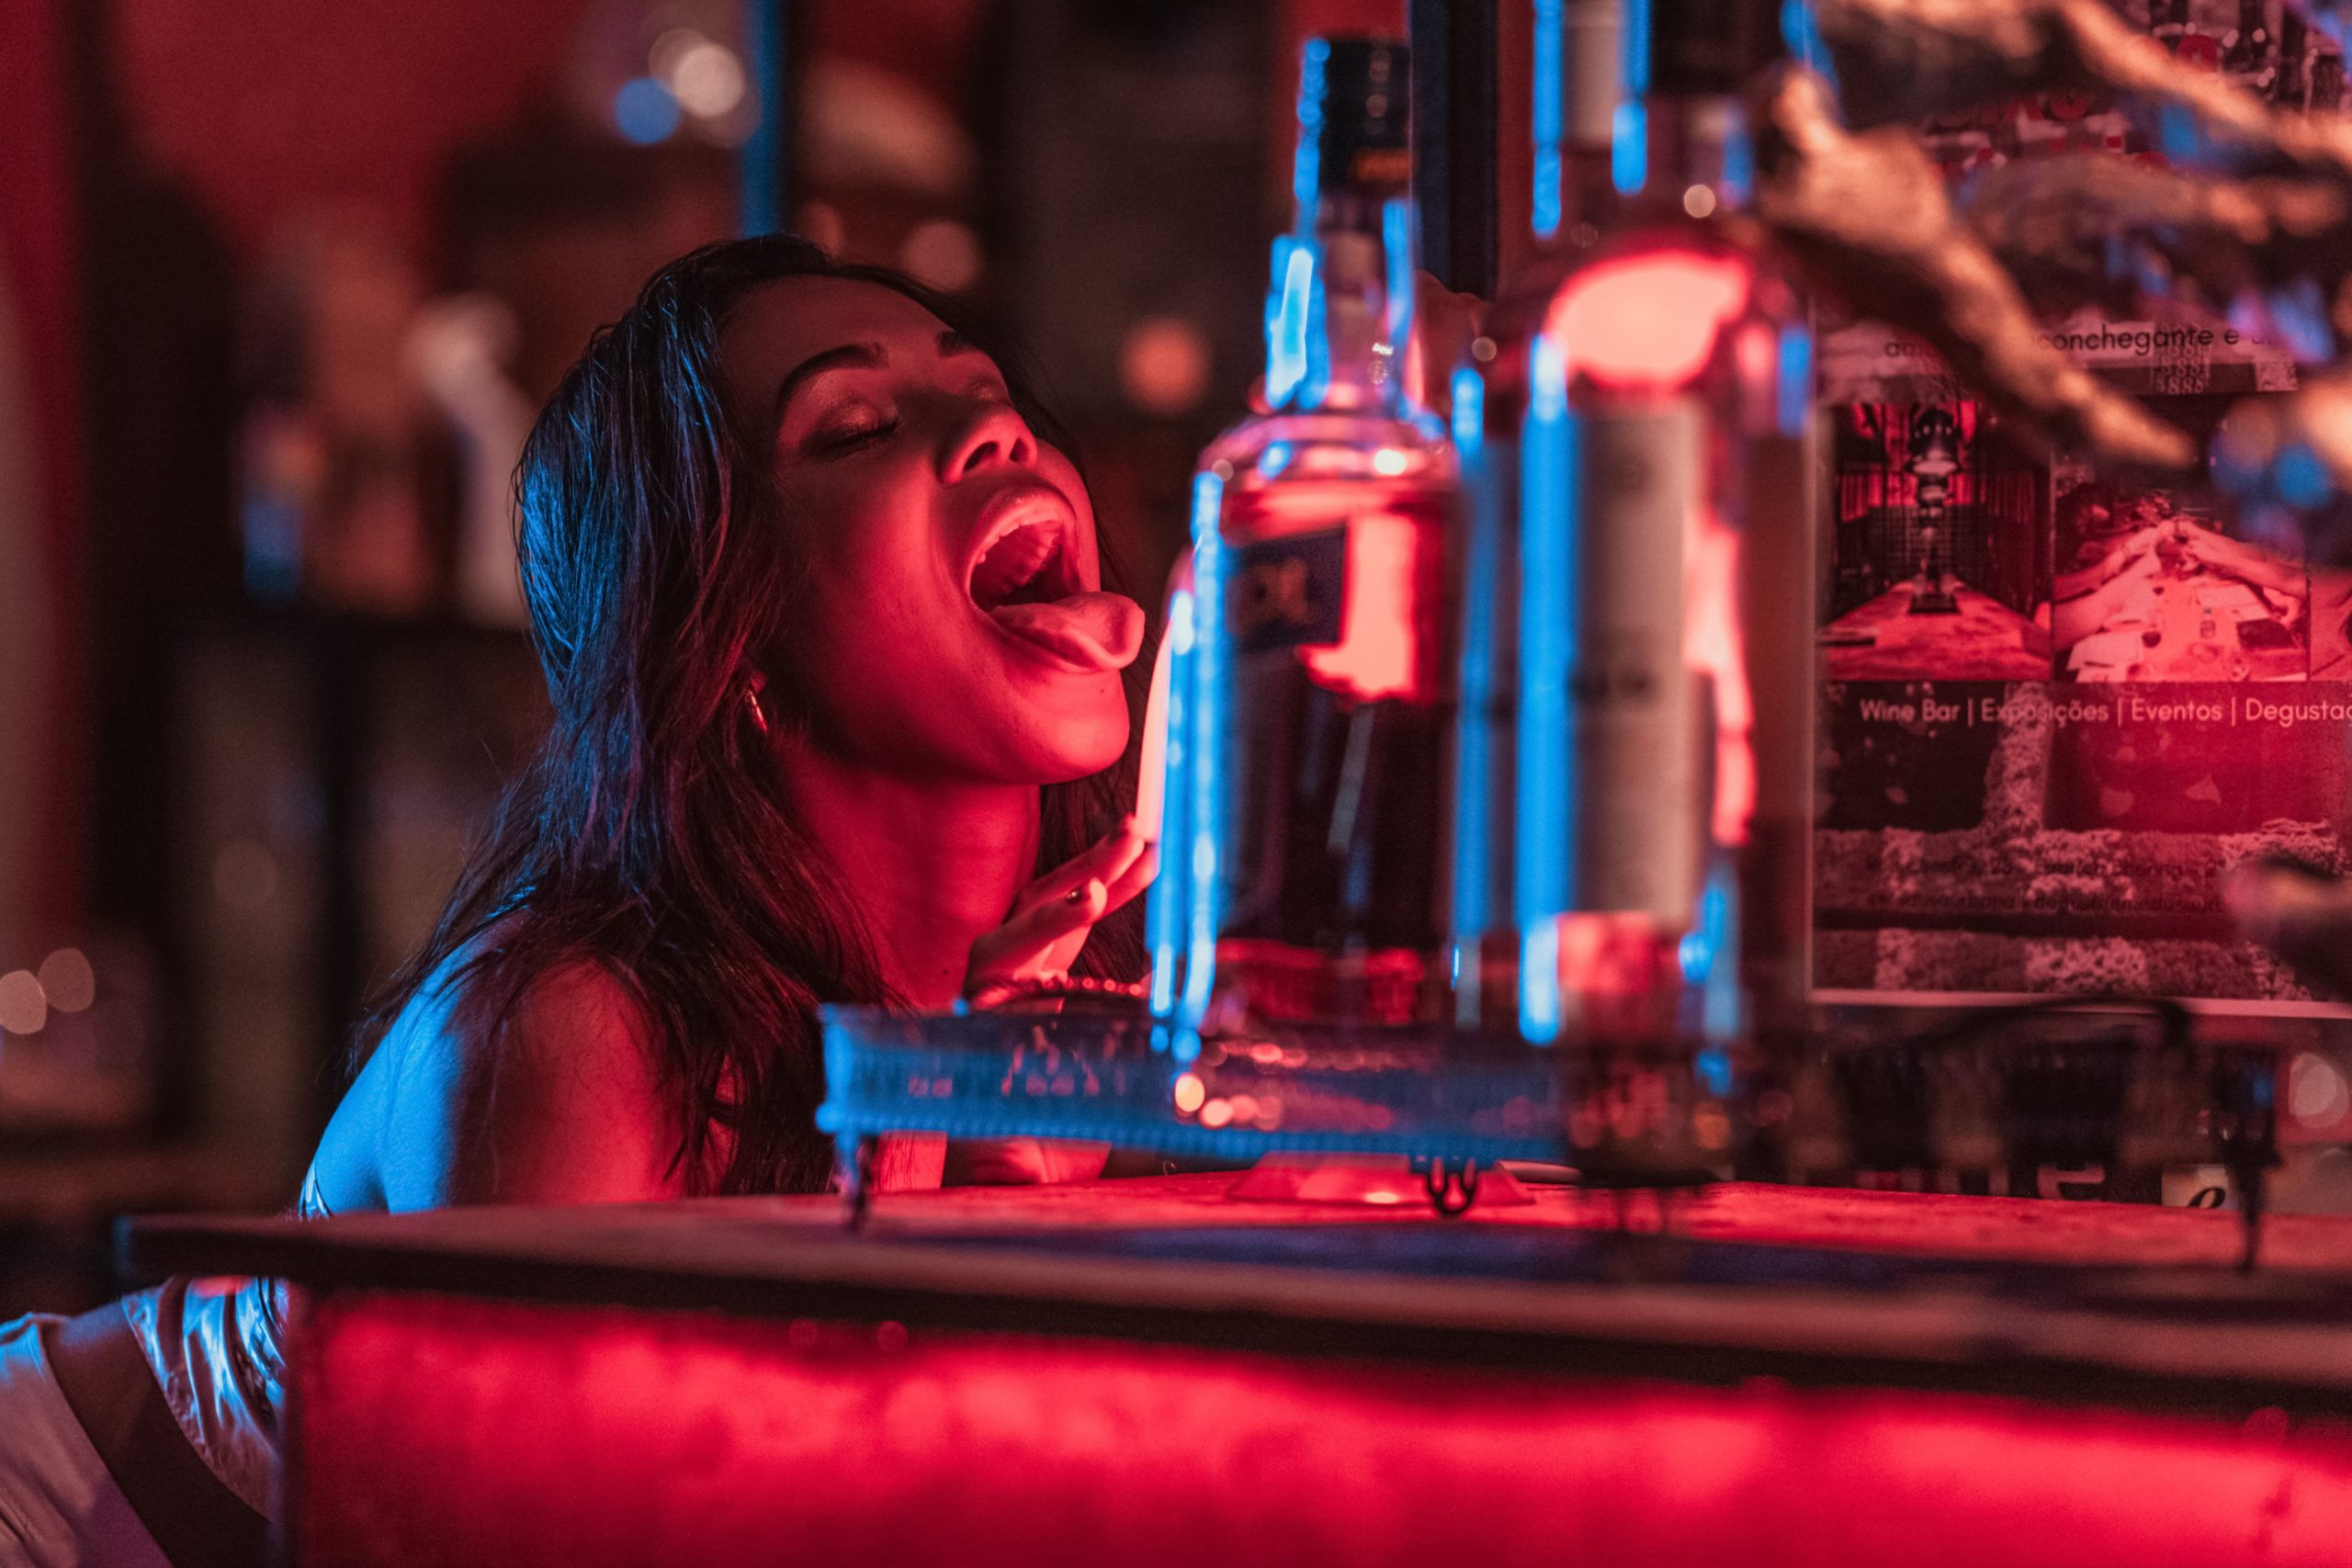 Woman at a bar leans forward to suggestively stick her tongue out at bottles of alcohol.